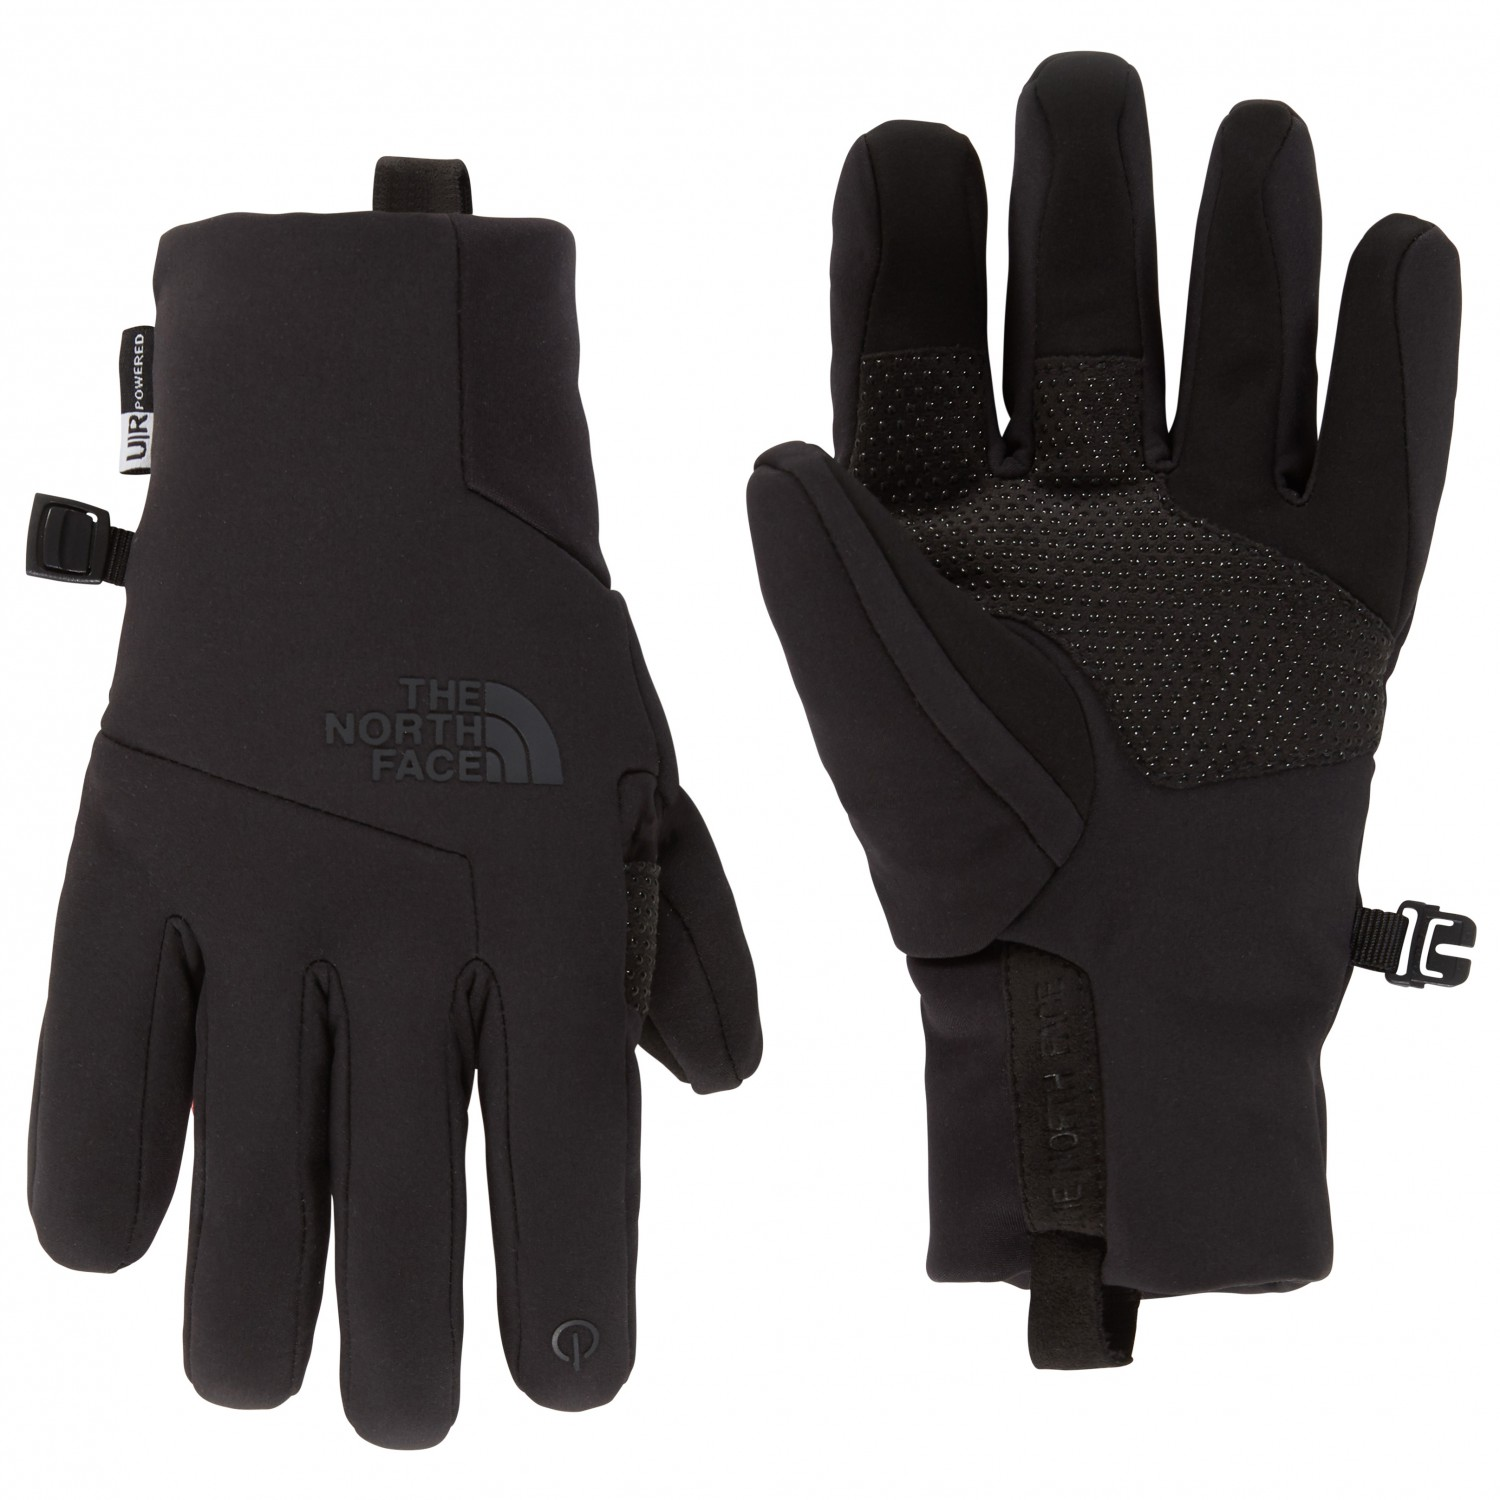 3c10ce946 The North Face Youth Apex+ Etip Glove - Gloves Kids | Buy online ...